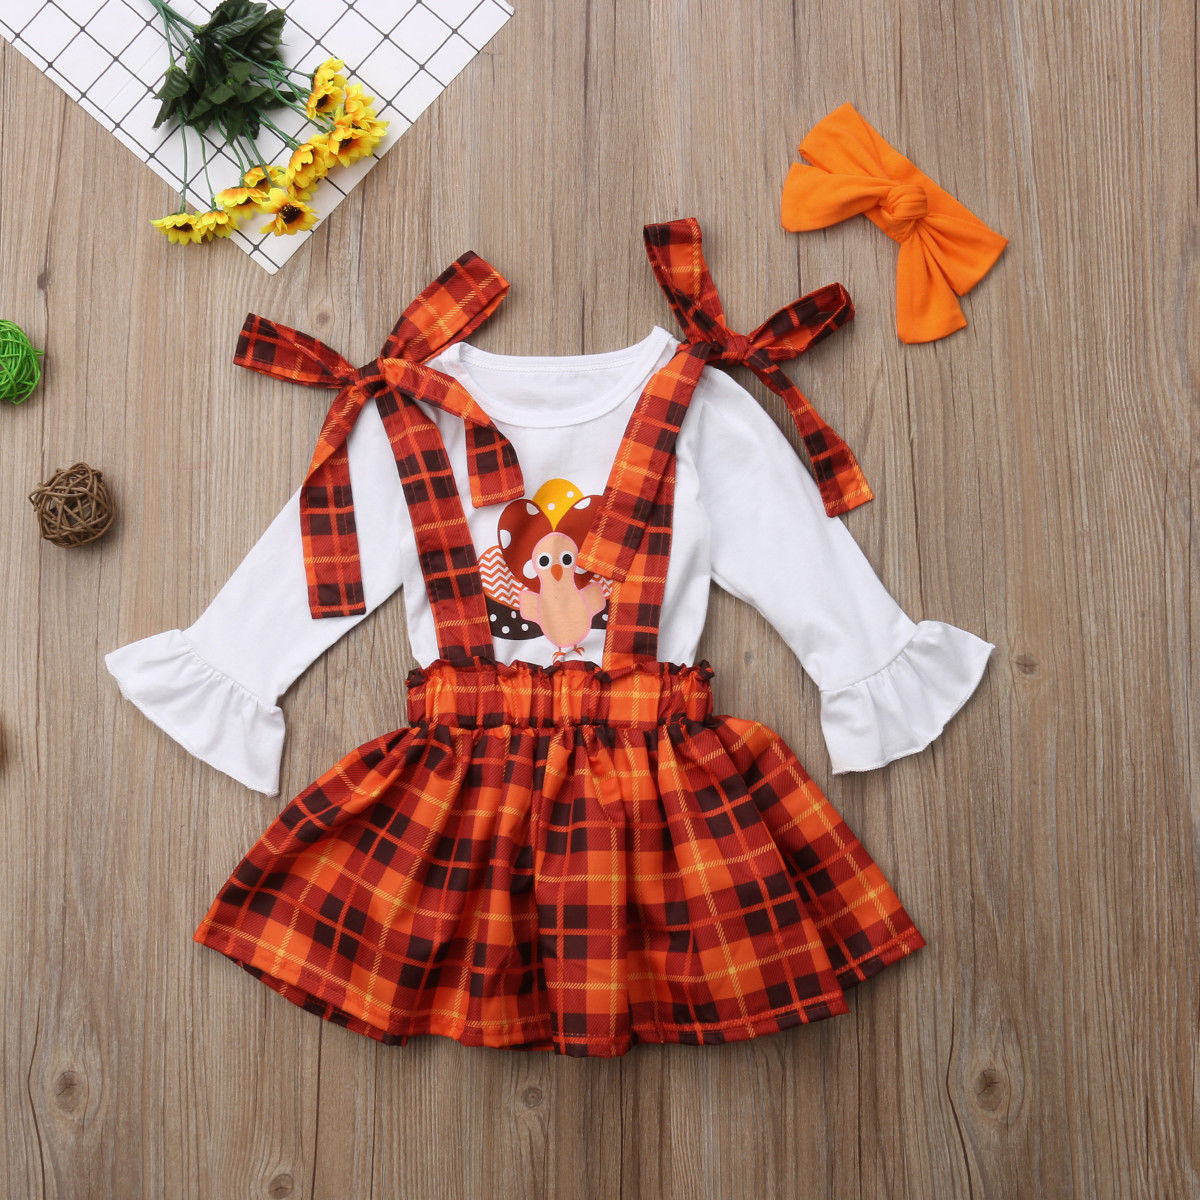 Plaid Suspender Skirt Headband 3PCS Overalls Clothes Set Thanksgiving Toddler Baby Girl Turkey Long Sleeve T-Shirt Tops